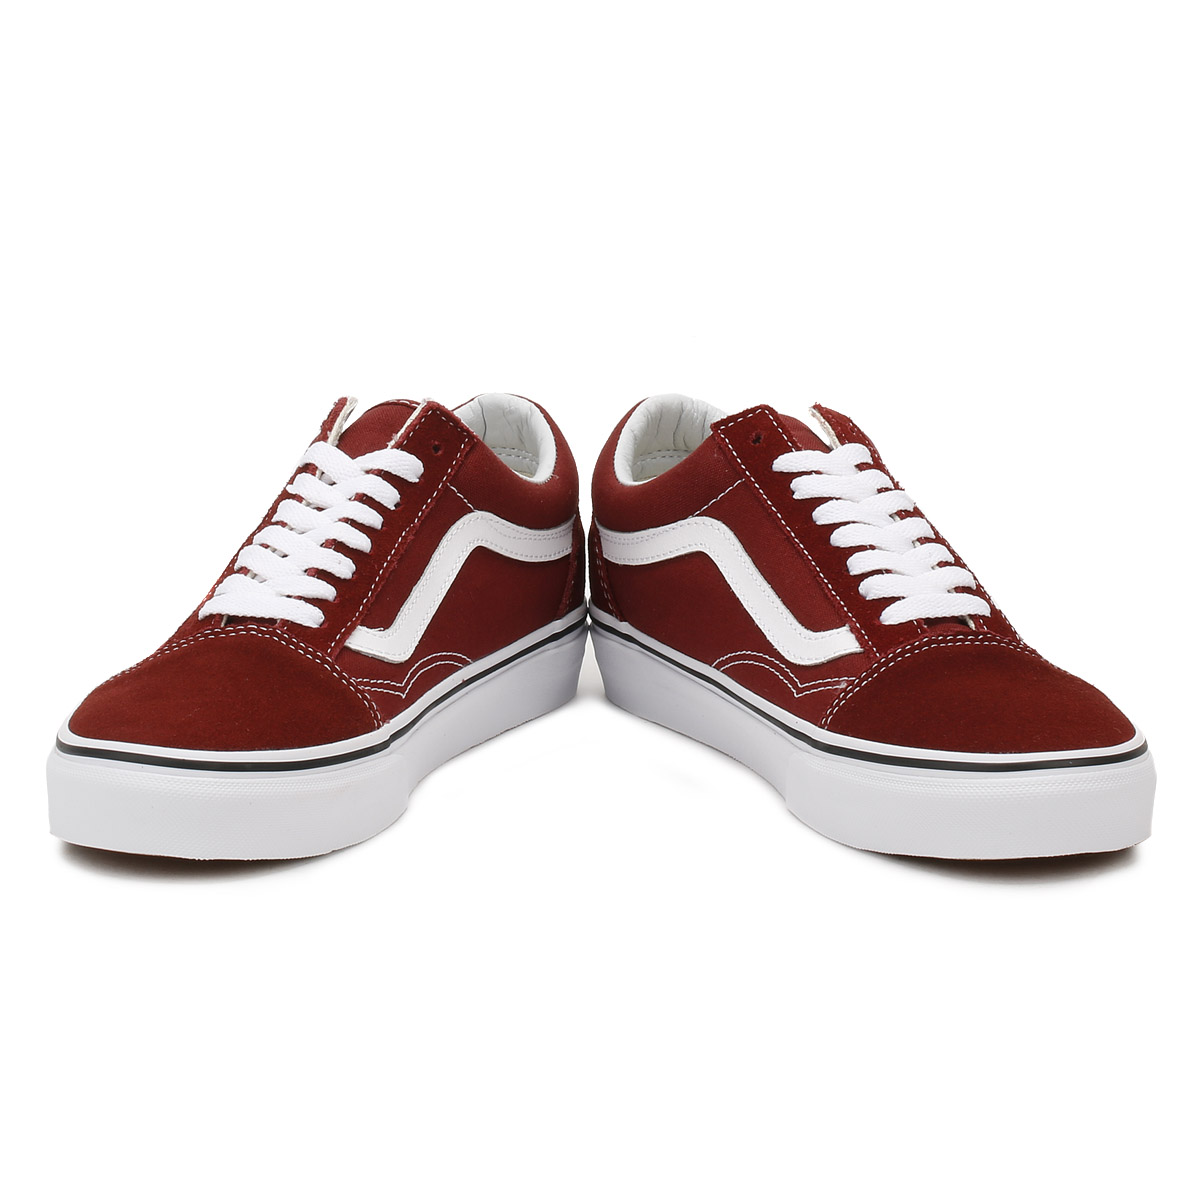 Vans old skool plataforma